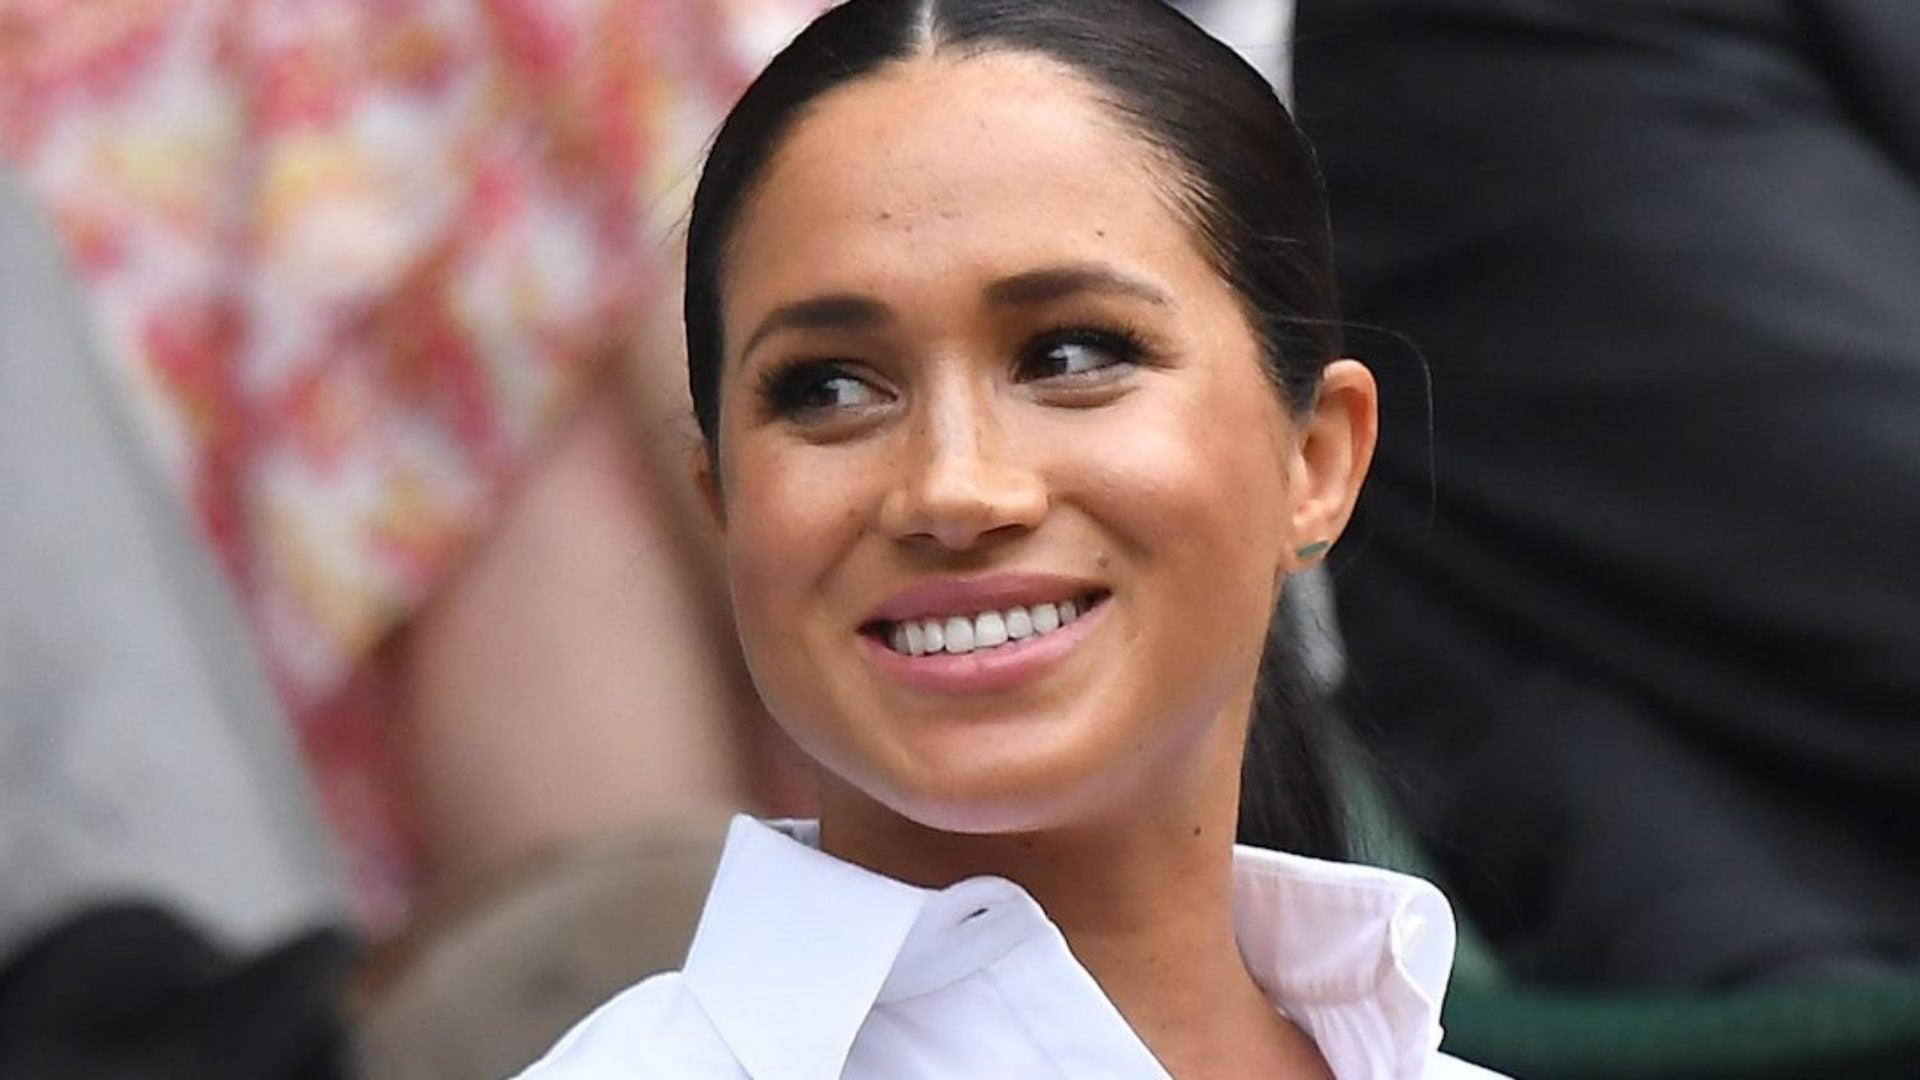 Meghan Markle Ready To Cheer On Serena Williams At US Open Final